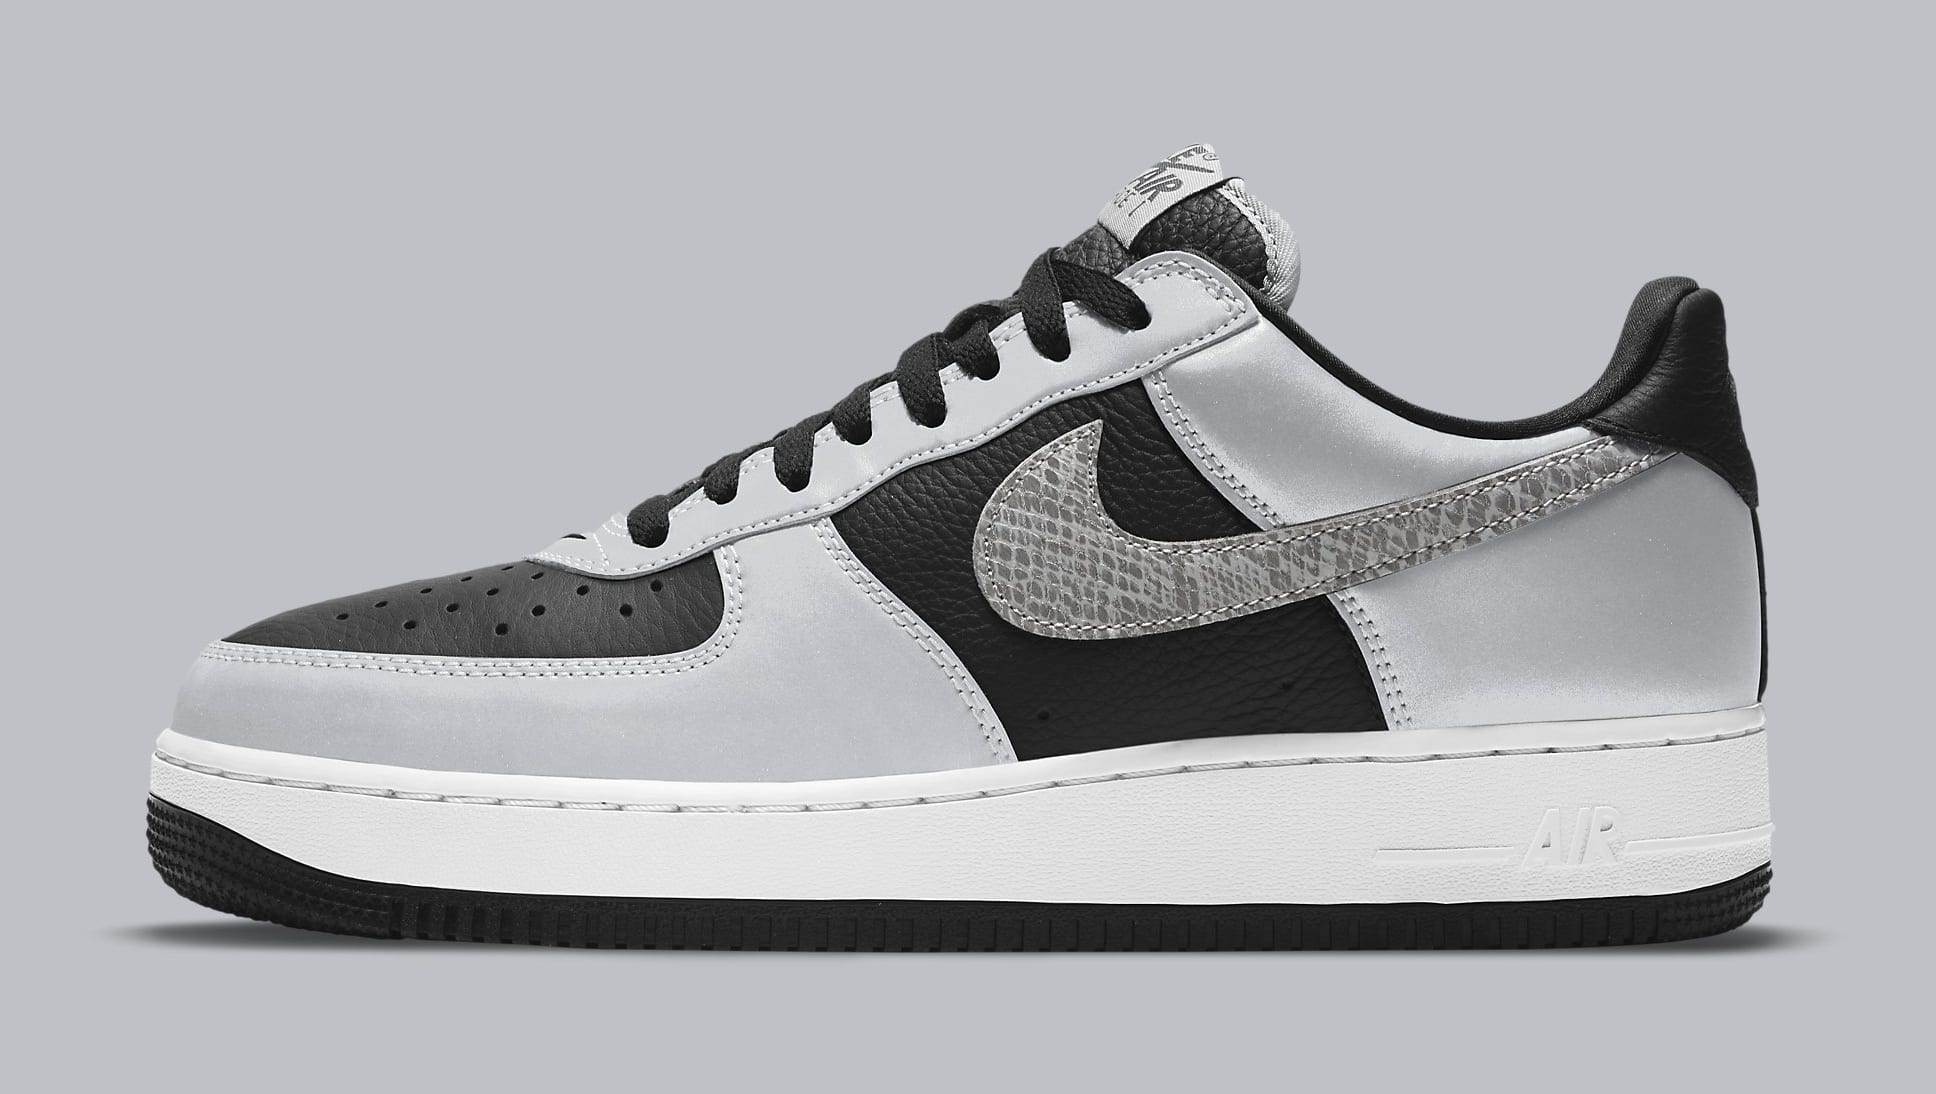 Nike Air Force 1 Low '3M Snake' DJ6033-001 Lateral